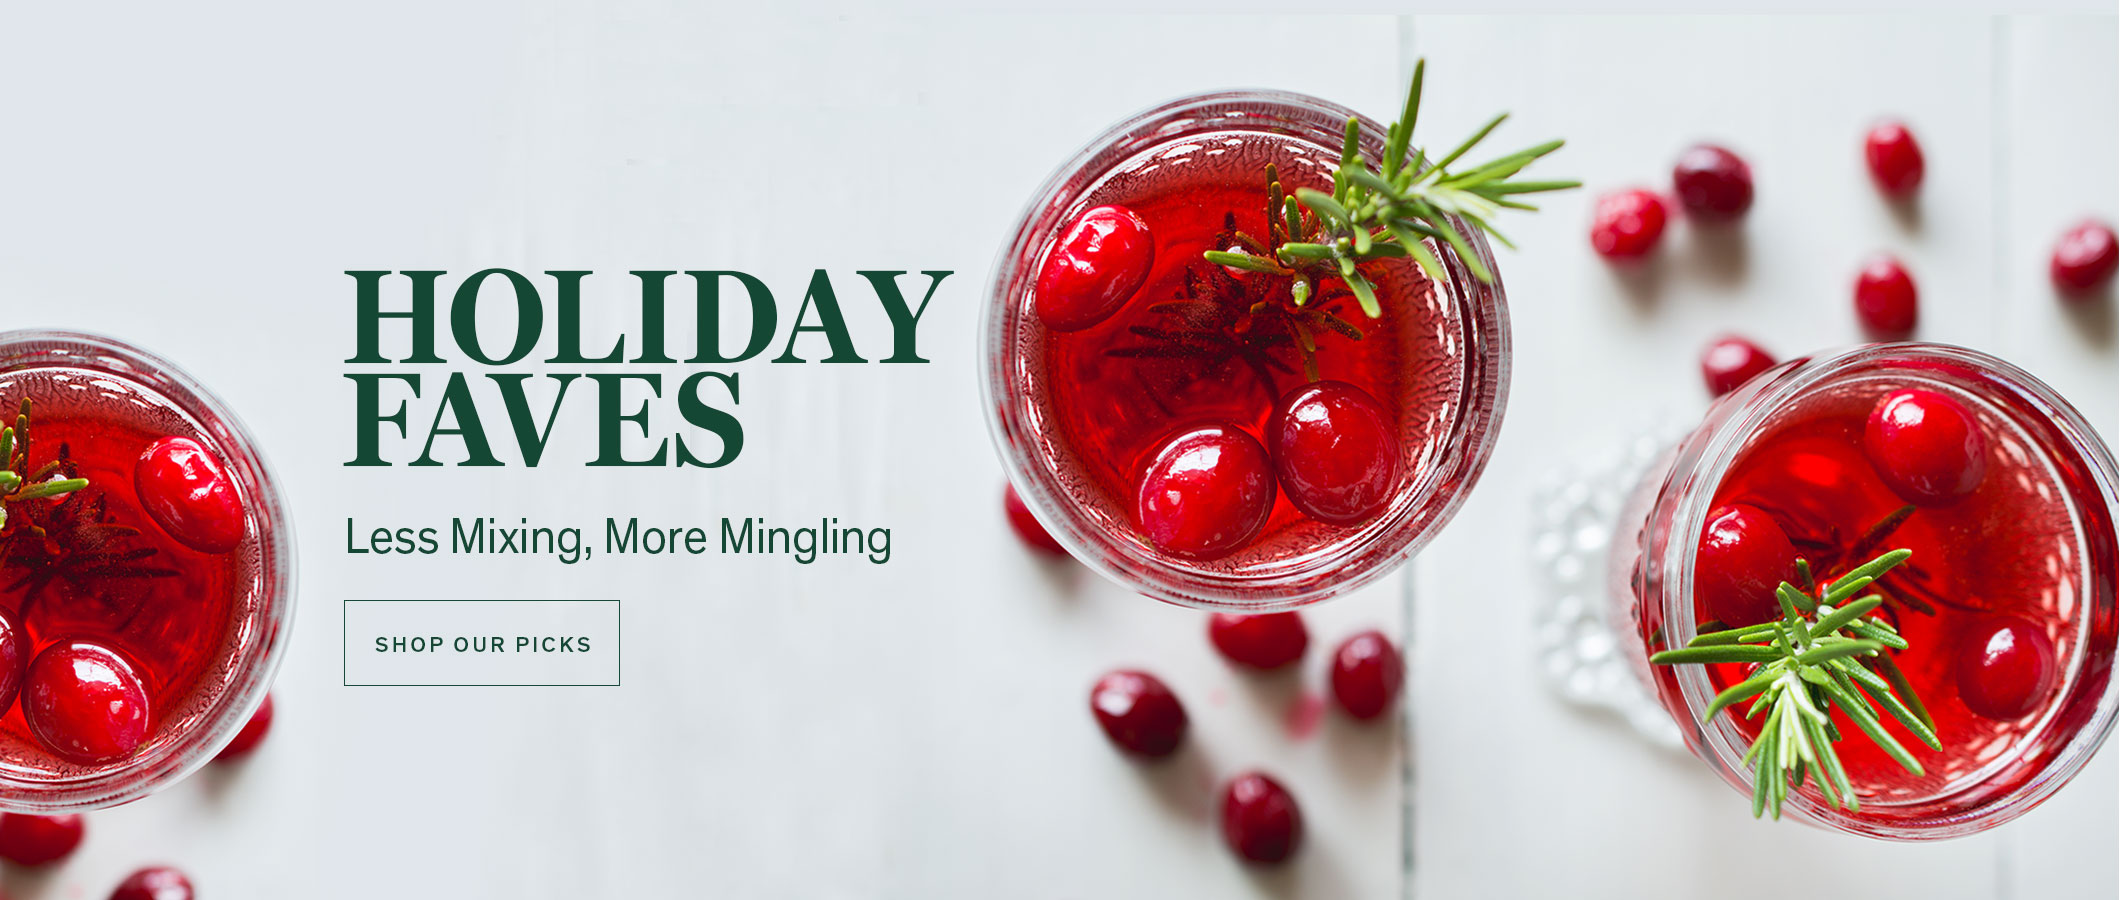 Holiday Faves  Less Mixing, More Mingling!  SHOP OUR PICKS